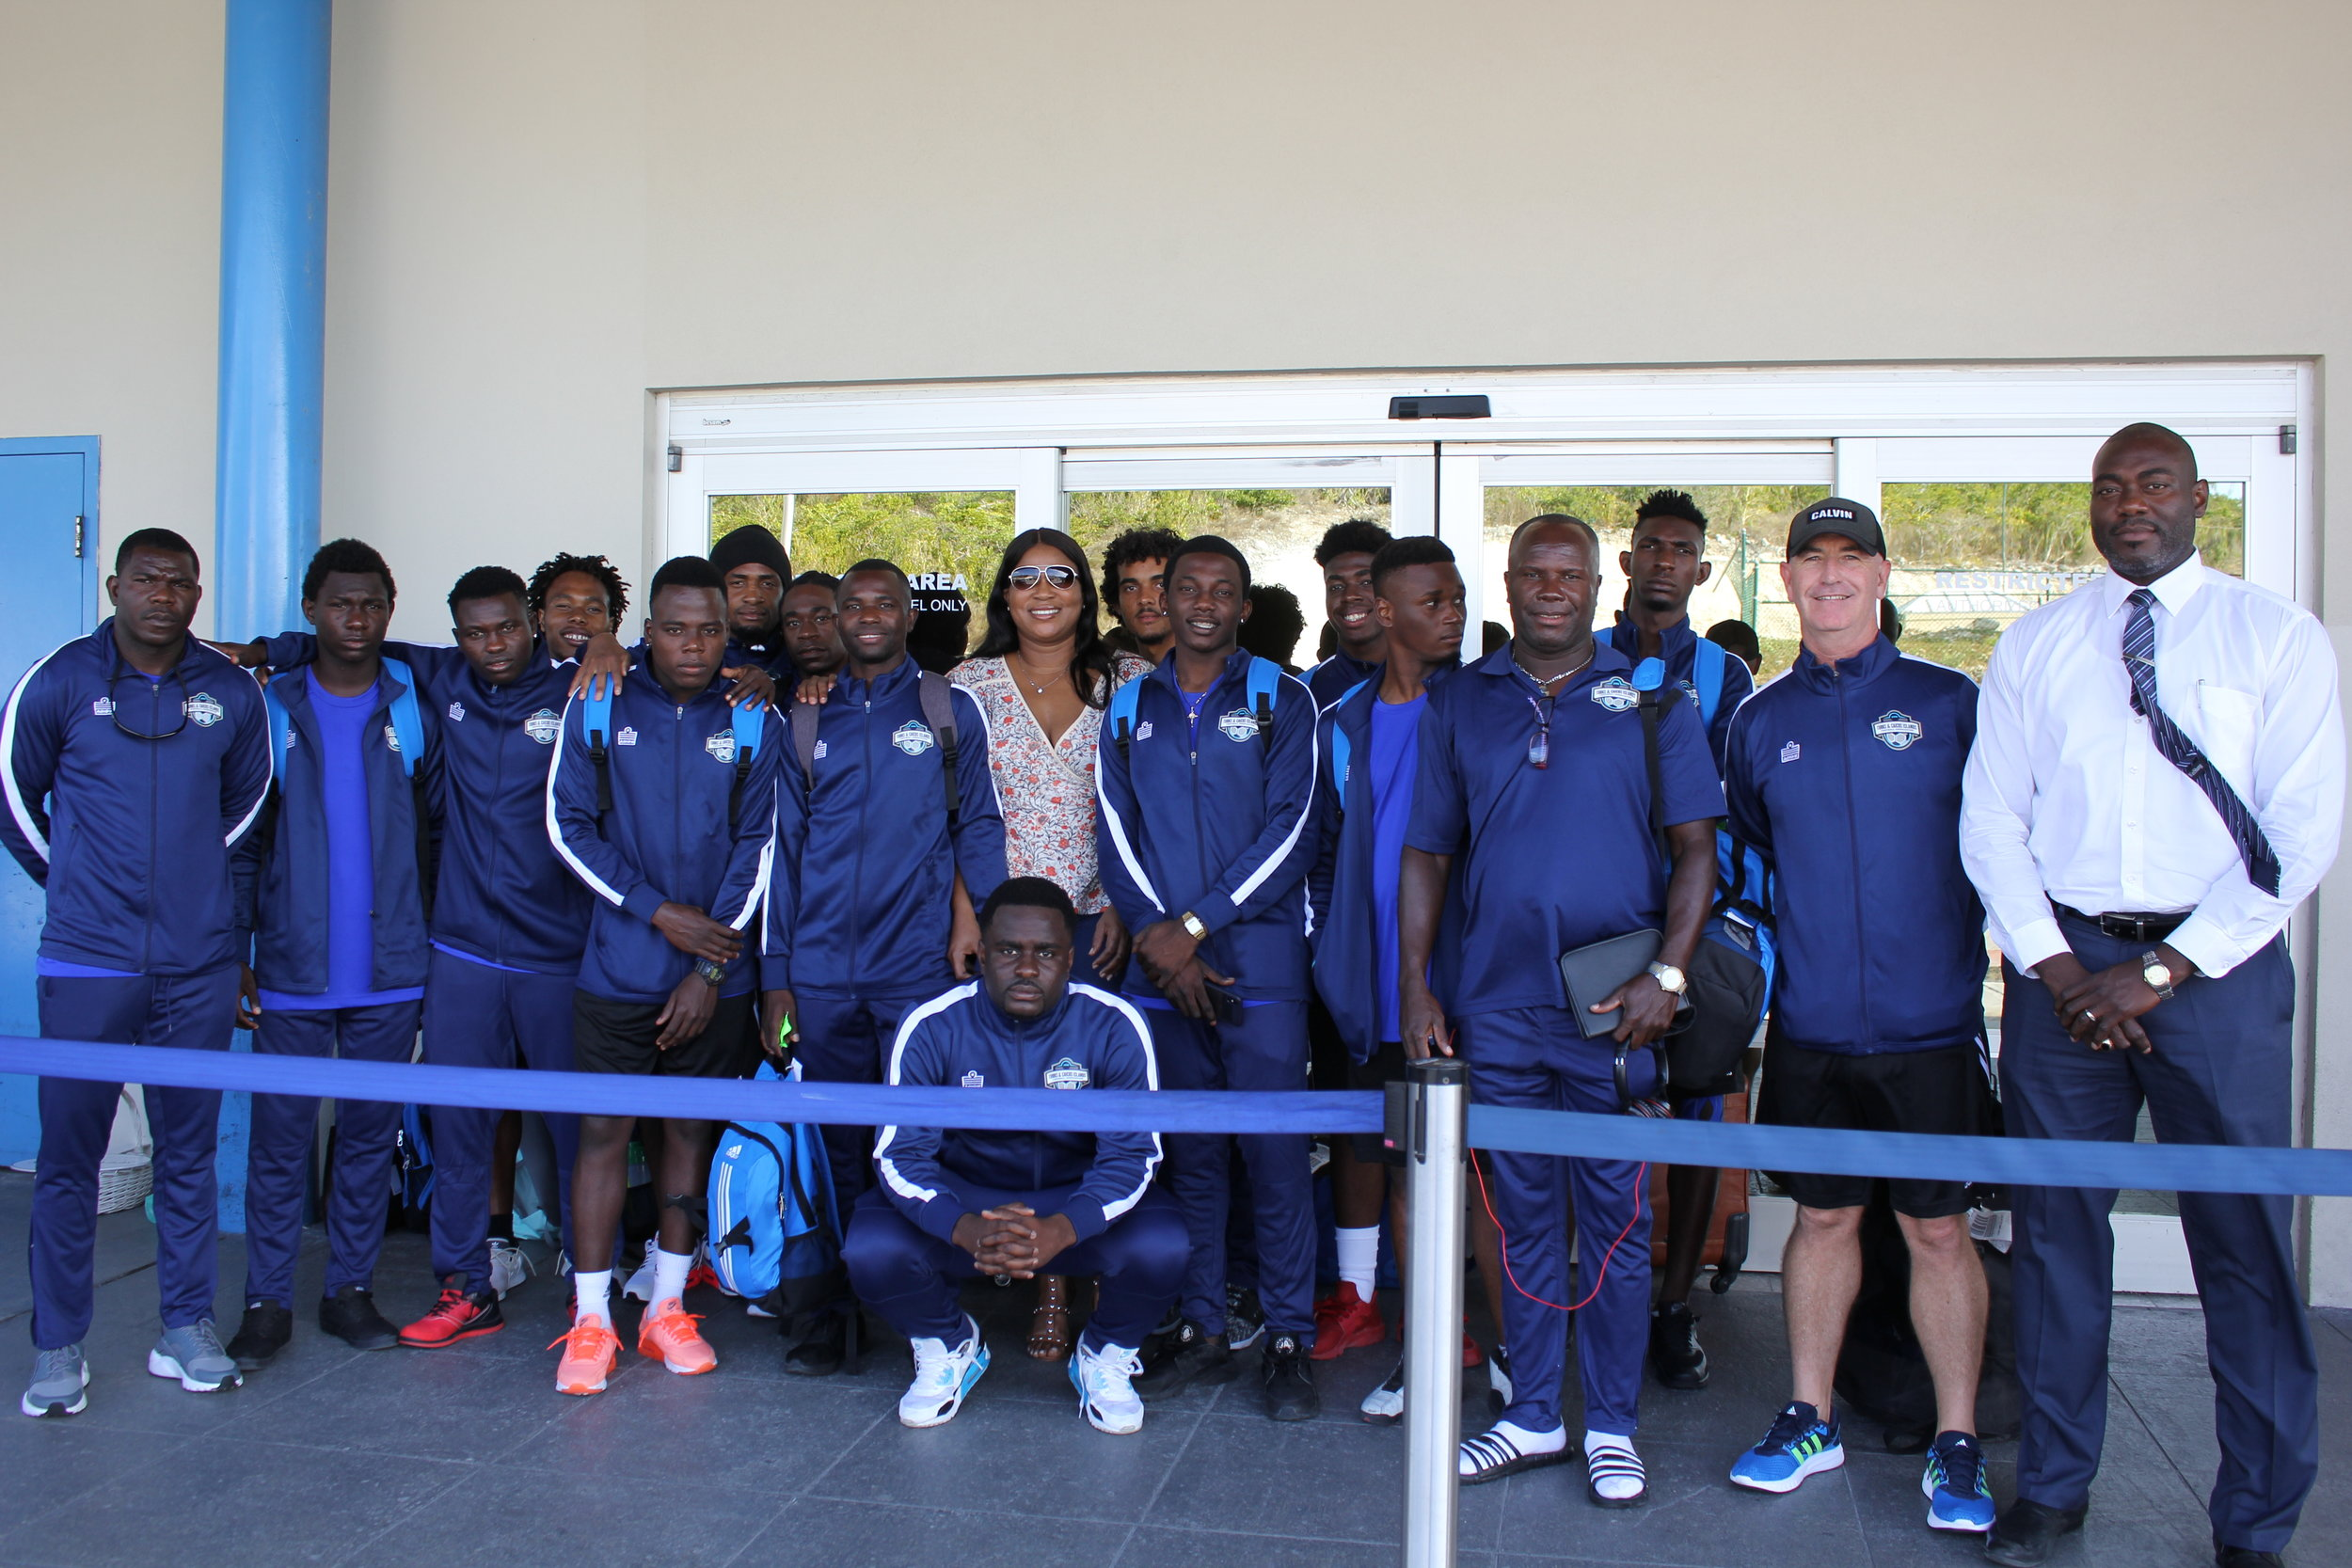 National Team Arrival with TCIFA President Sonia Bien-Aime, and Director of Sports Jarette Forbes.